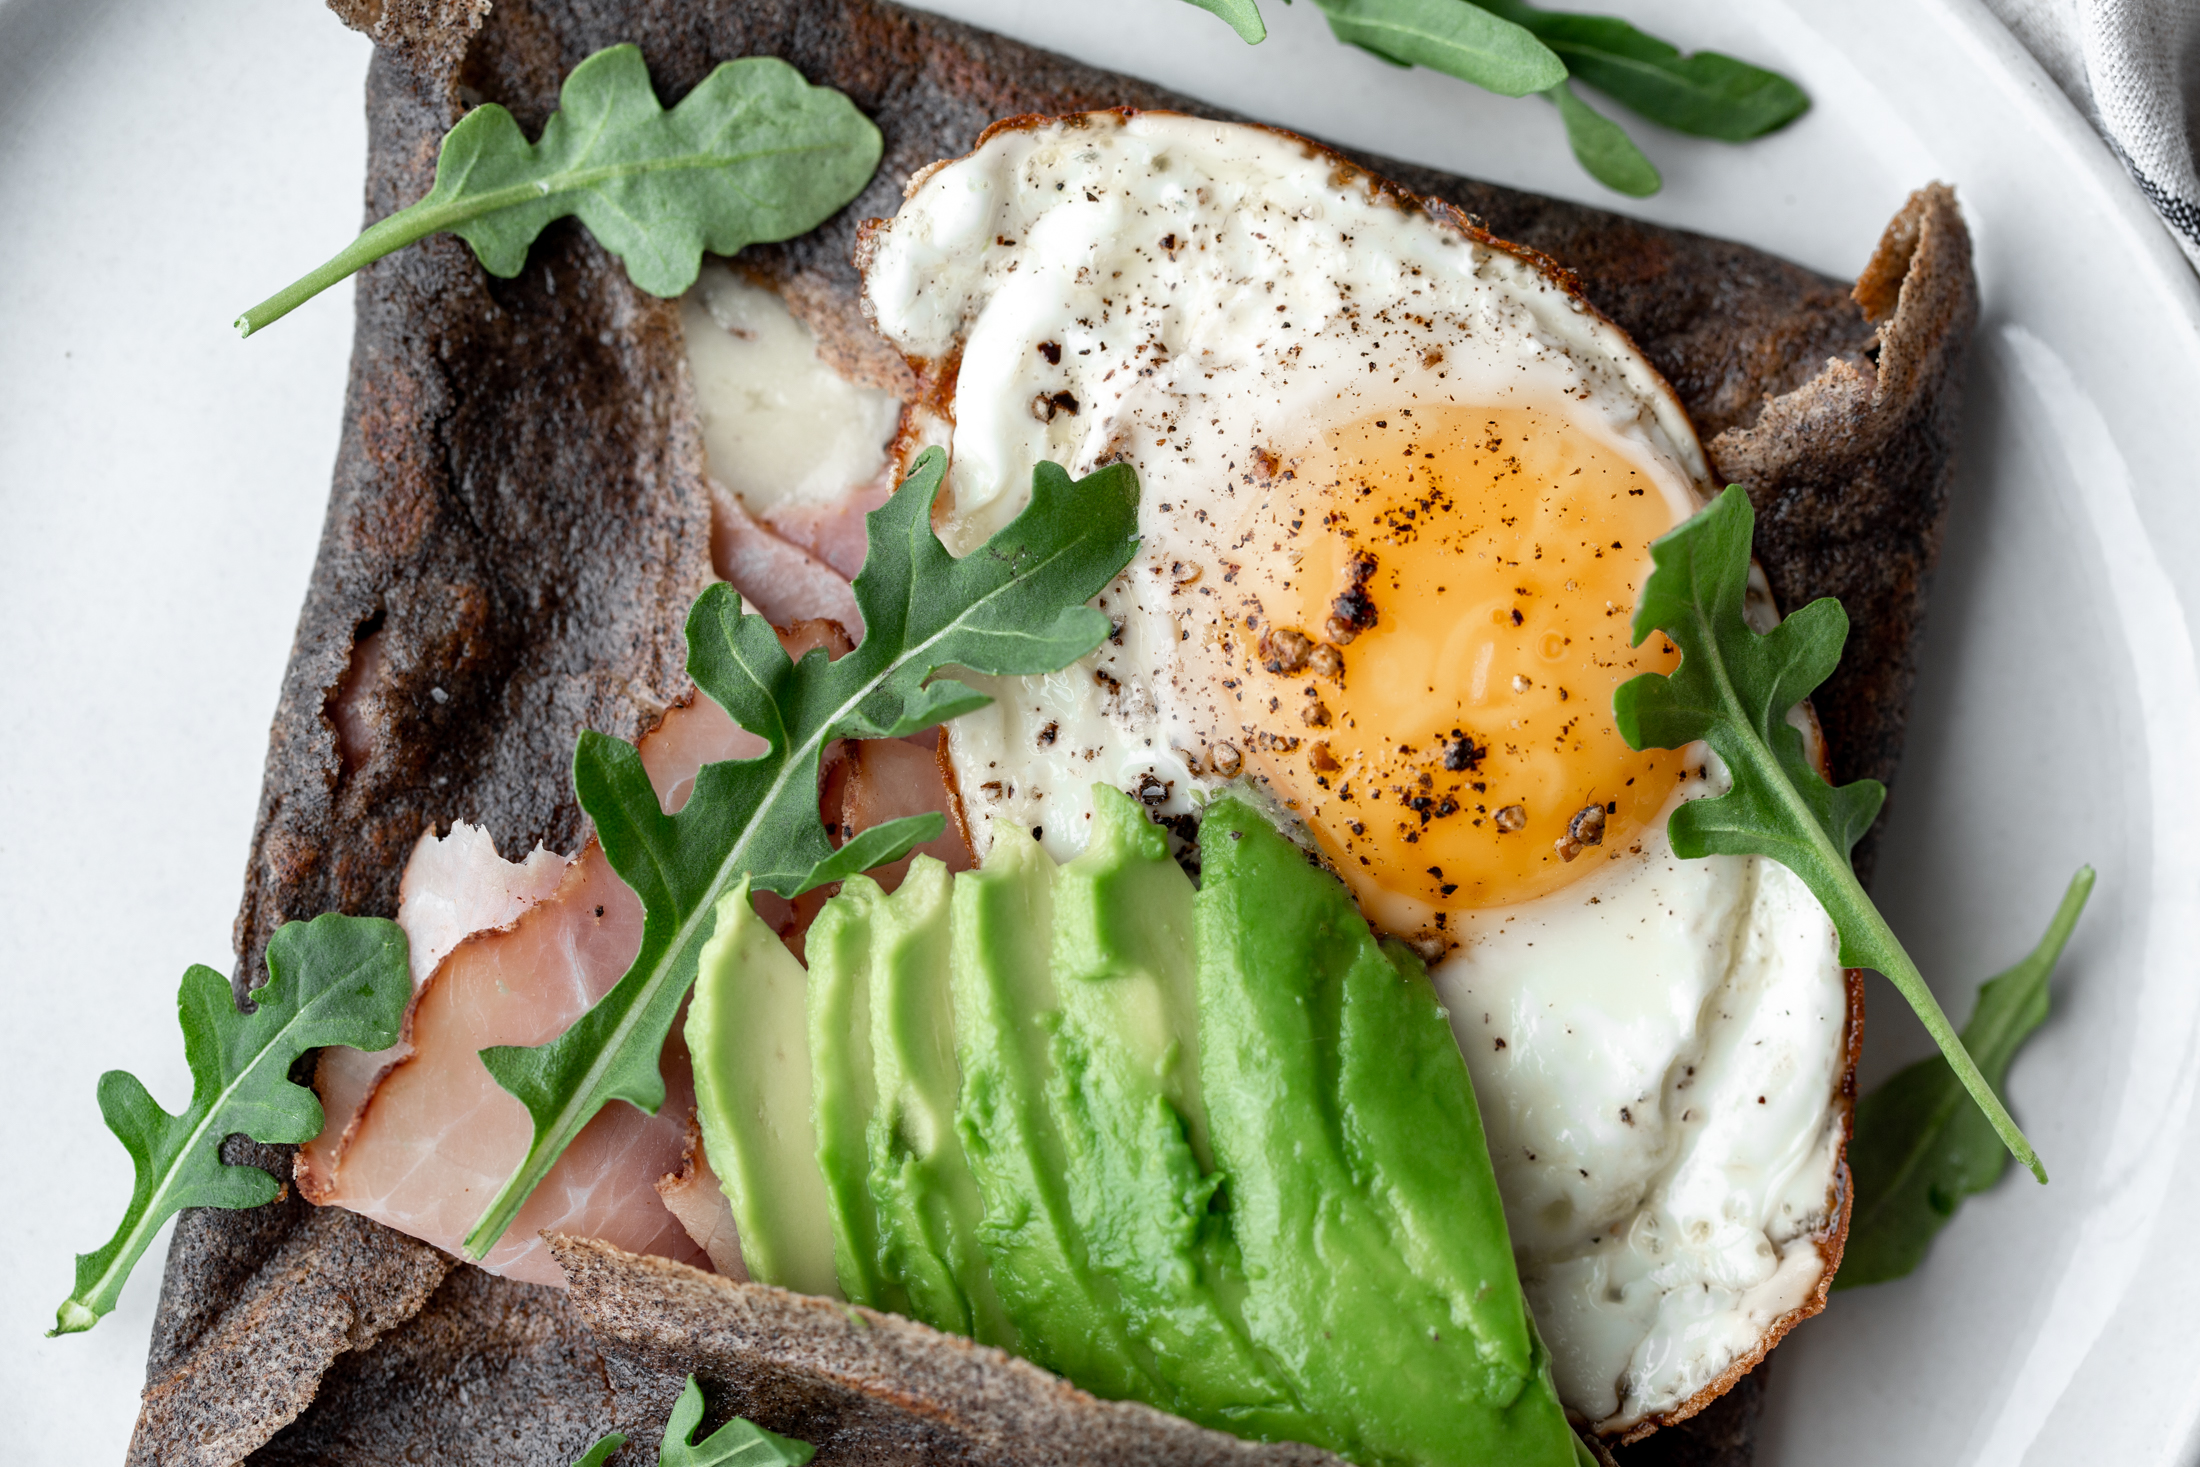 Buckwheat Crepes with Cheese, Avocado, Ham and eggs-13.jpg